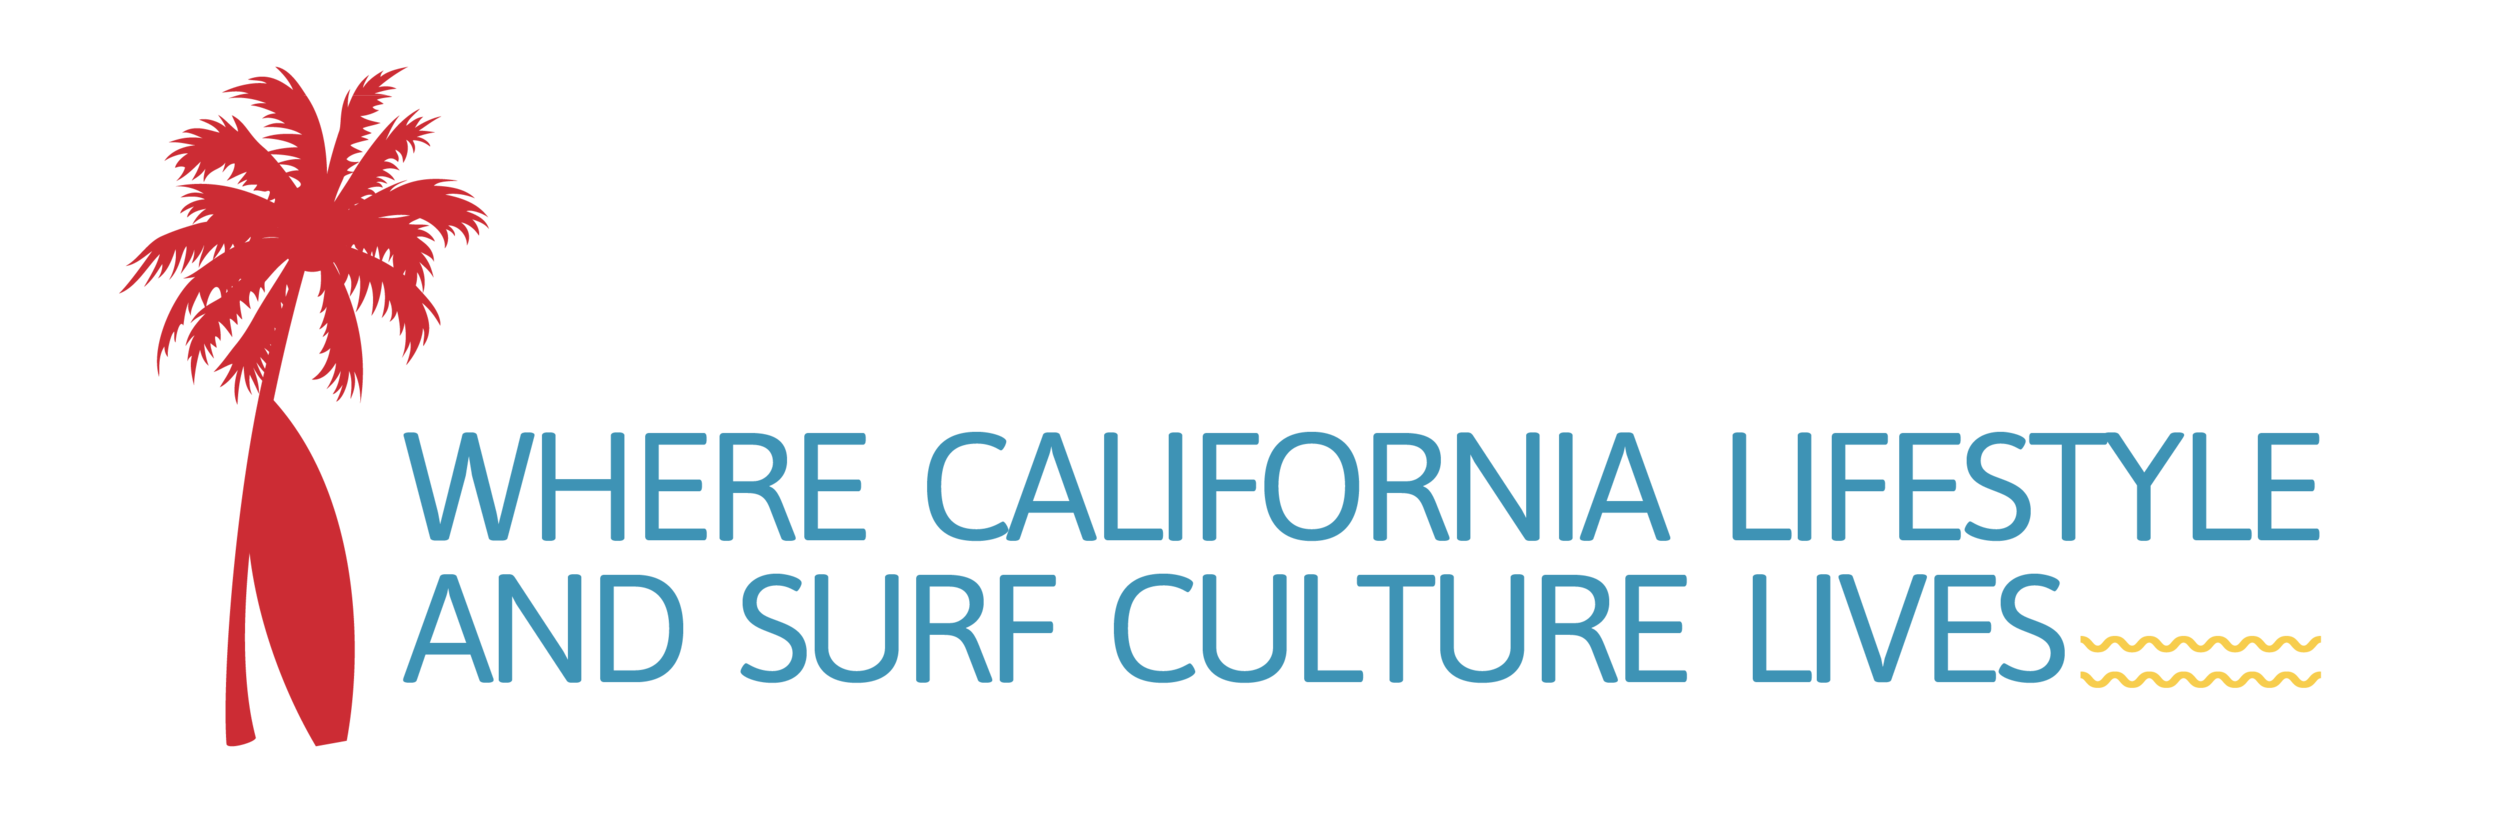 Surf Daddy Brewing - Where California lifestyle and surf culture lives